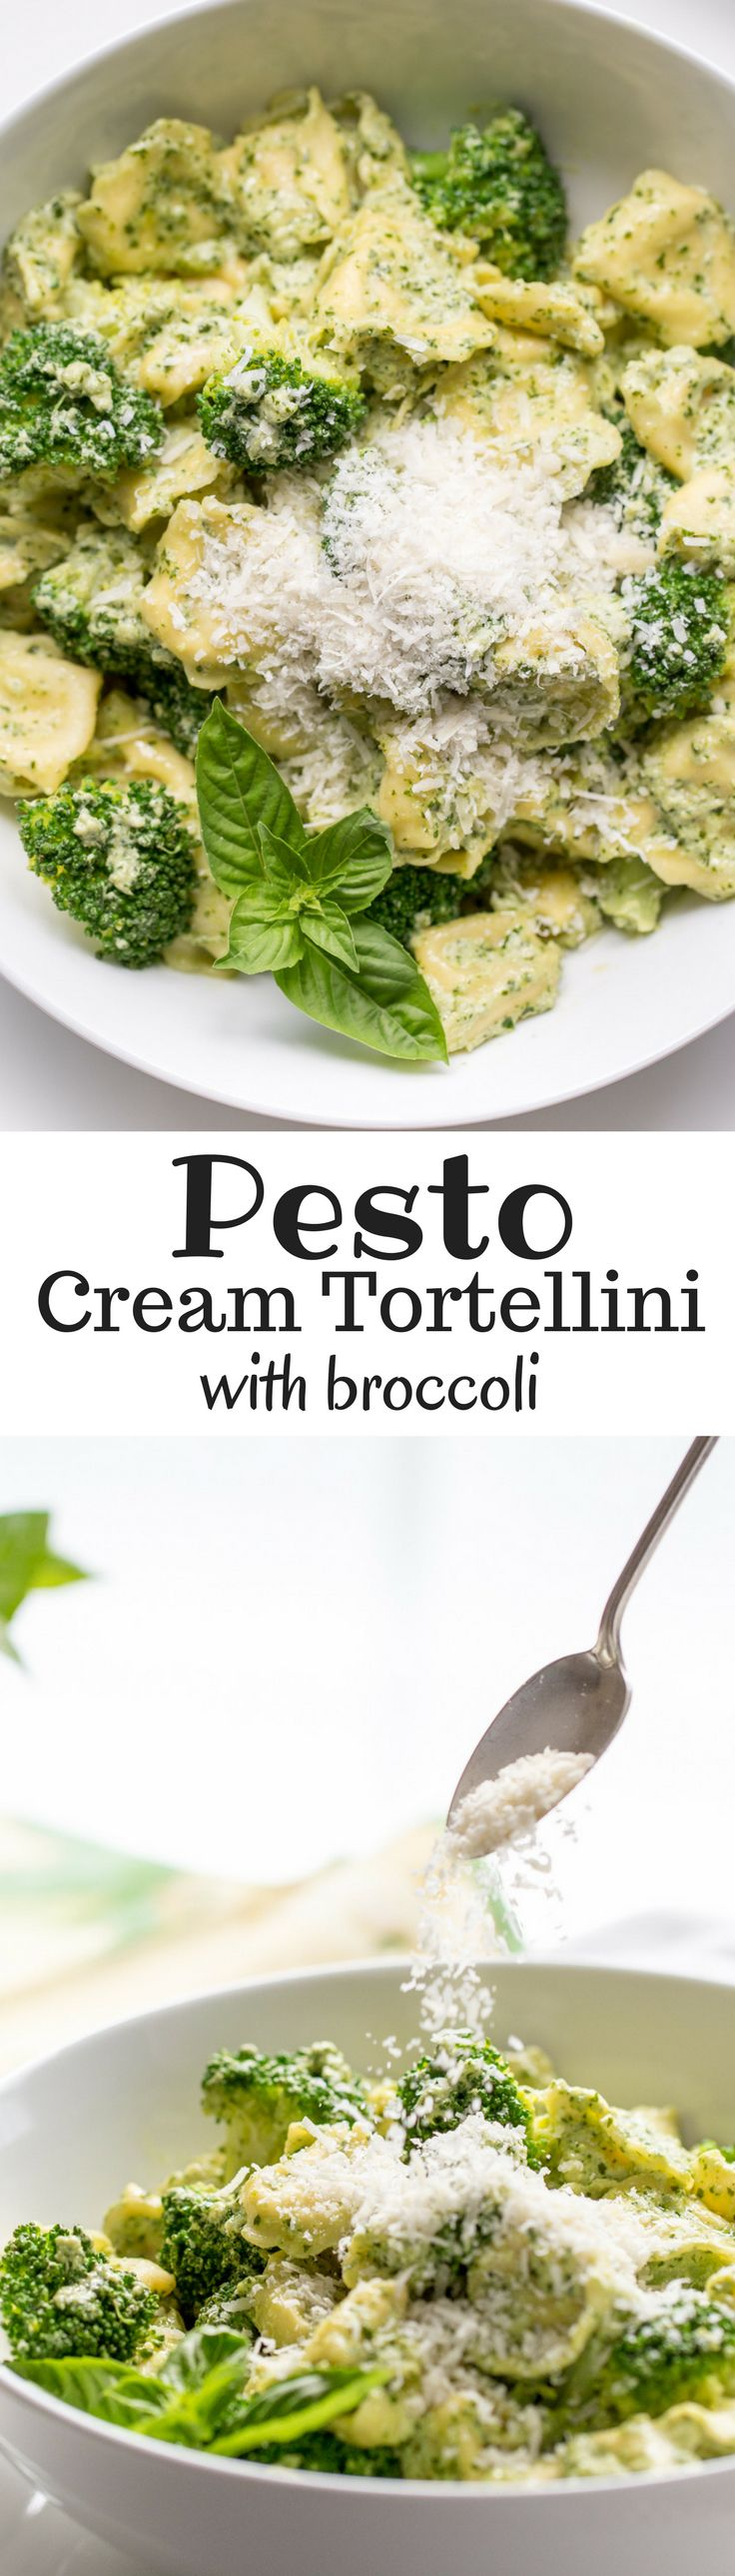 Basil Pesto Cream with Tortellini and Steamed Broccoli - super simple and full of terrific flavor - a memorable dish ready in minutes! | www.savingdessert.com